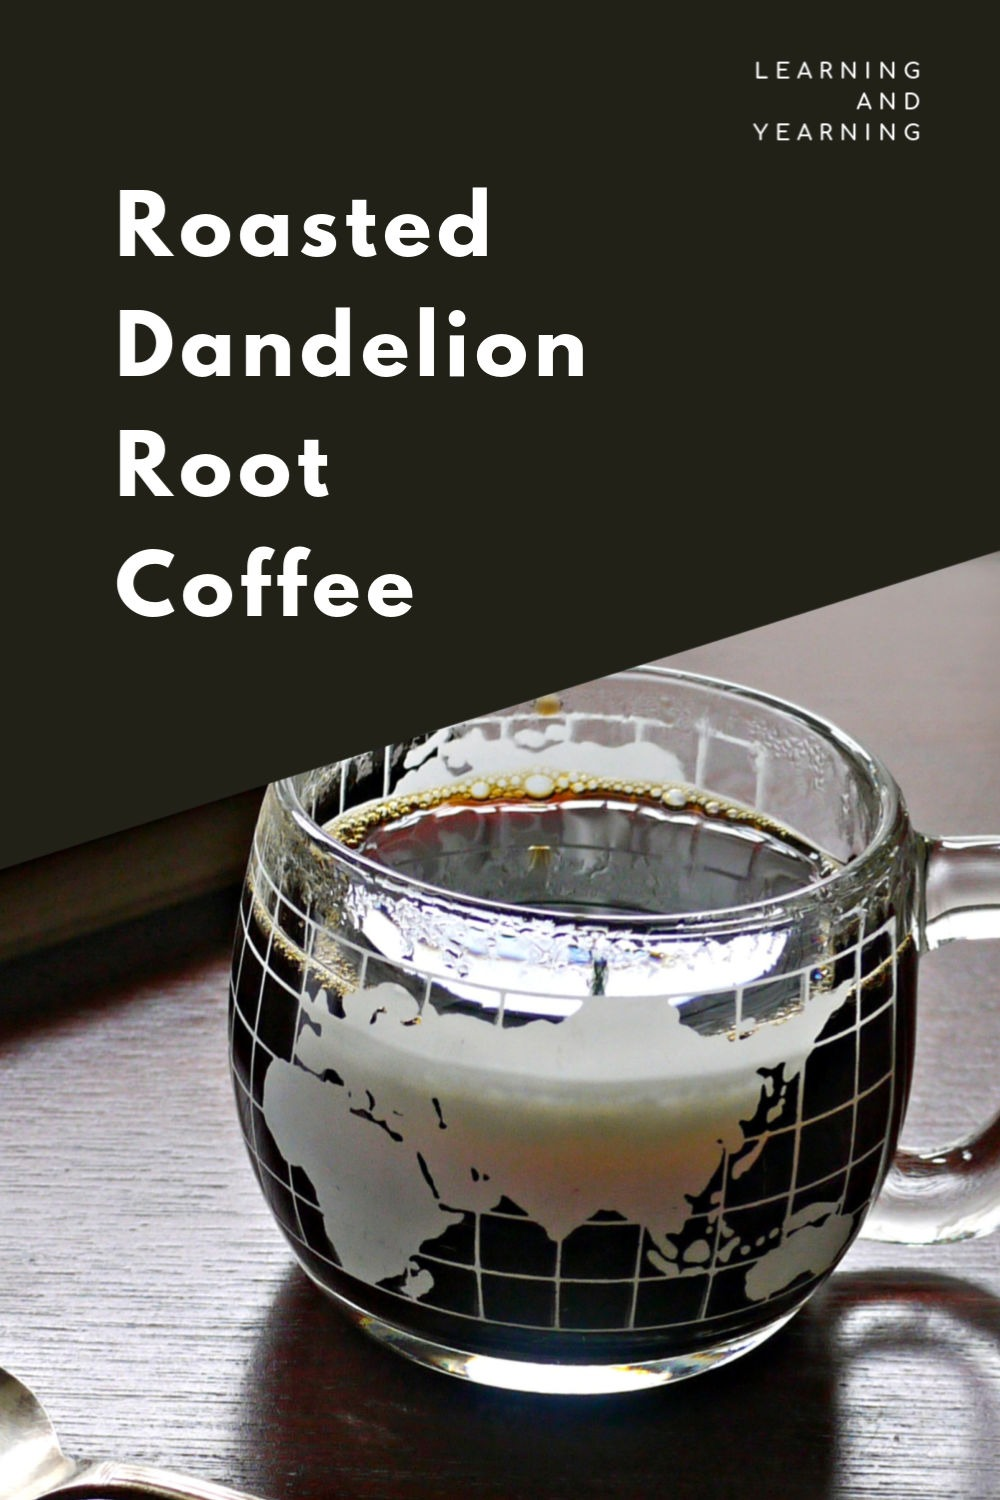 Roasted dandelion root coffee!